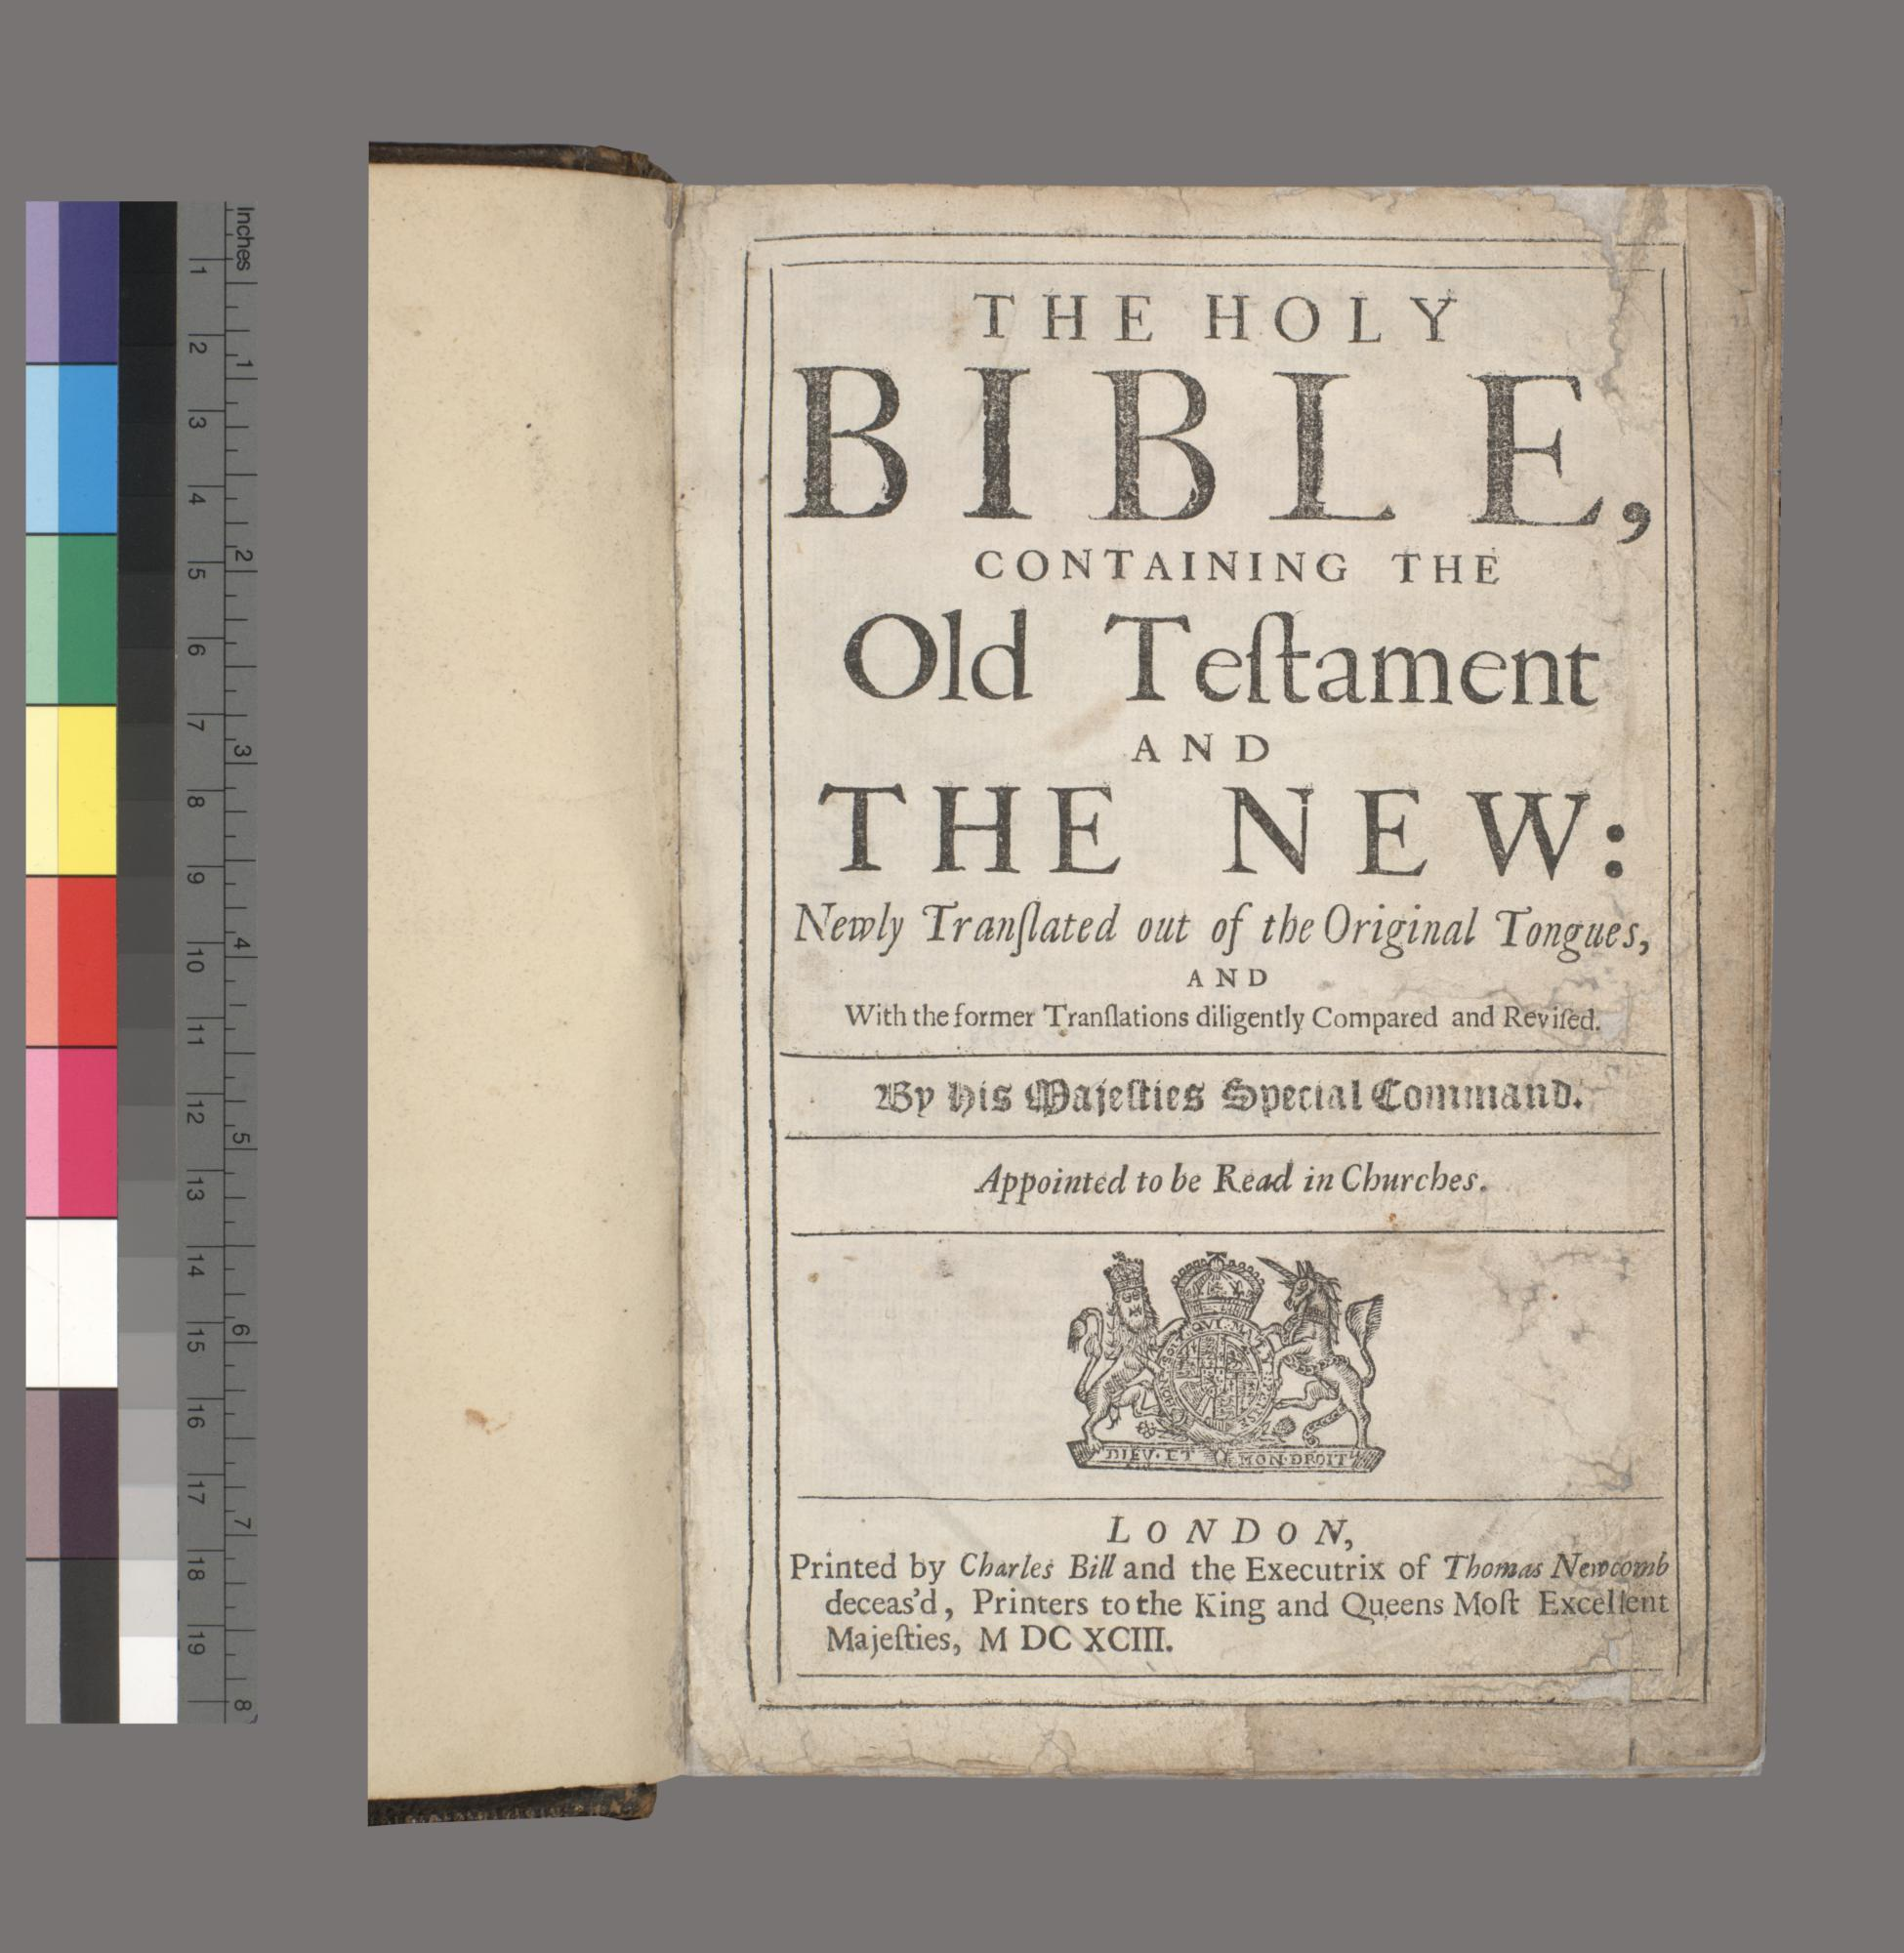 Holy Bible, containing the Old Testament and the New